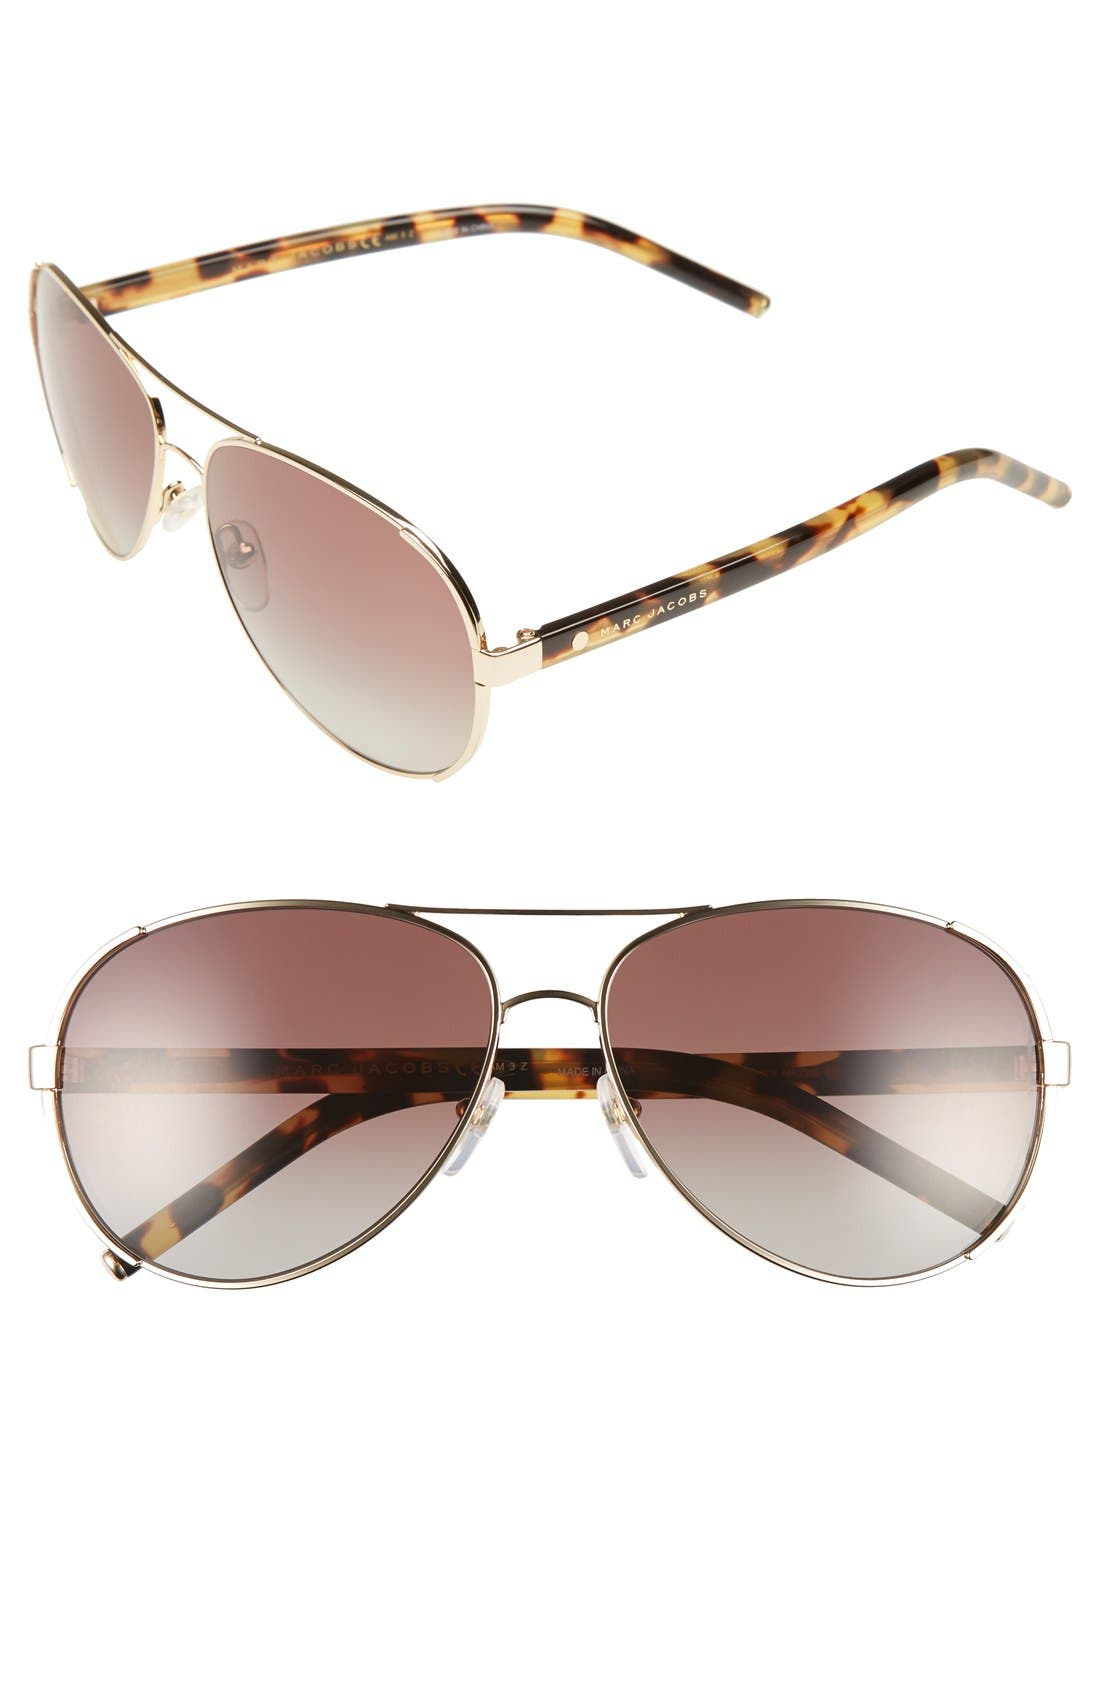 Main Image - MARC JACOBS 60mm Aviator Sunglasses